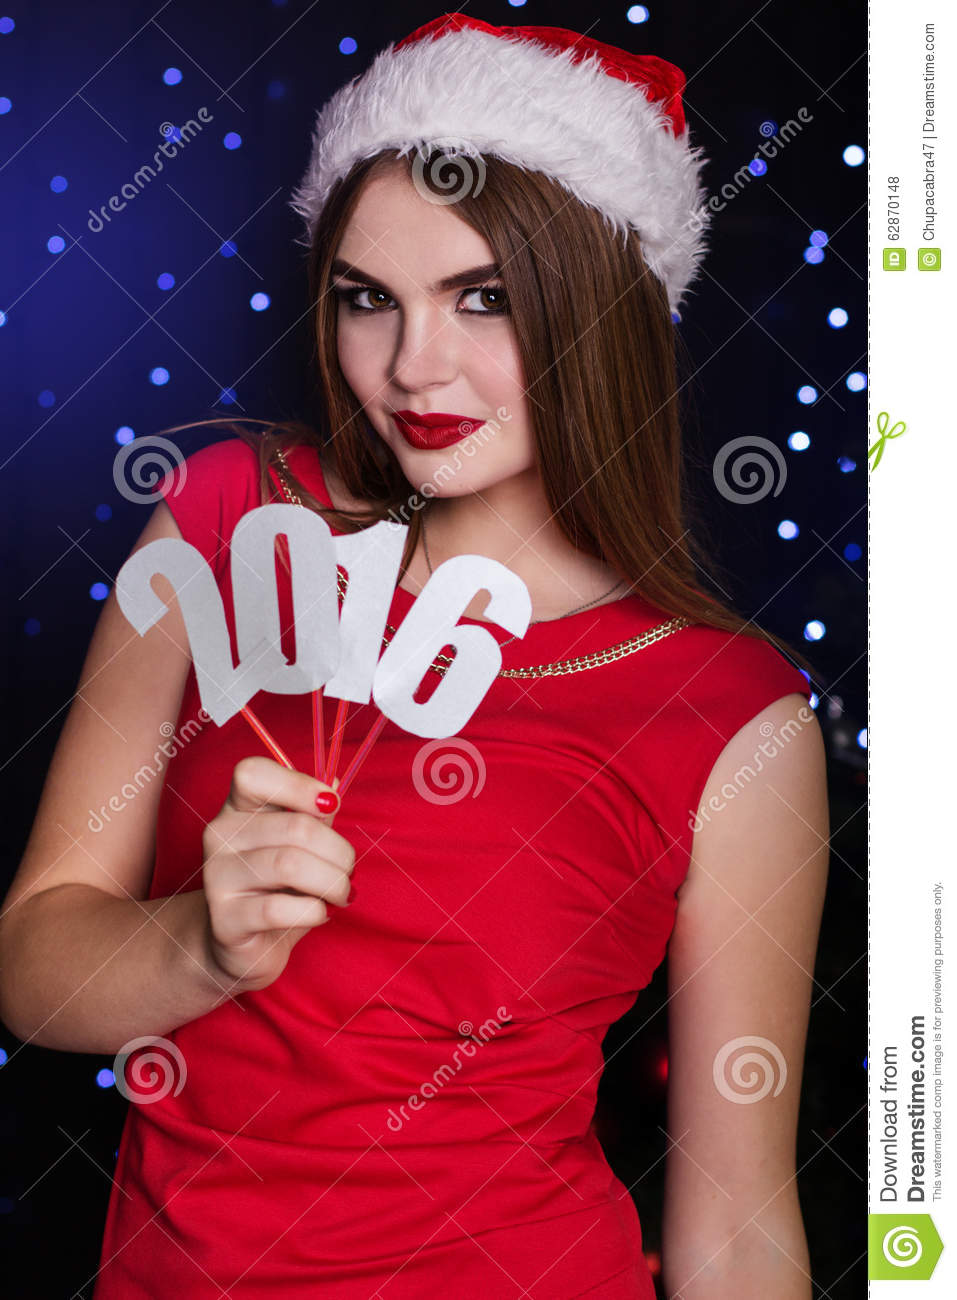 Santa girl is holding paper digits 2016